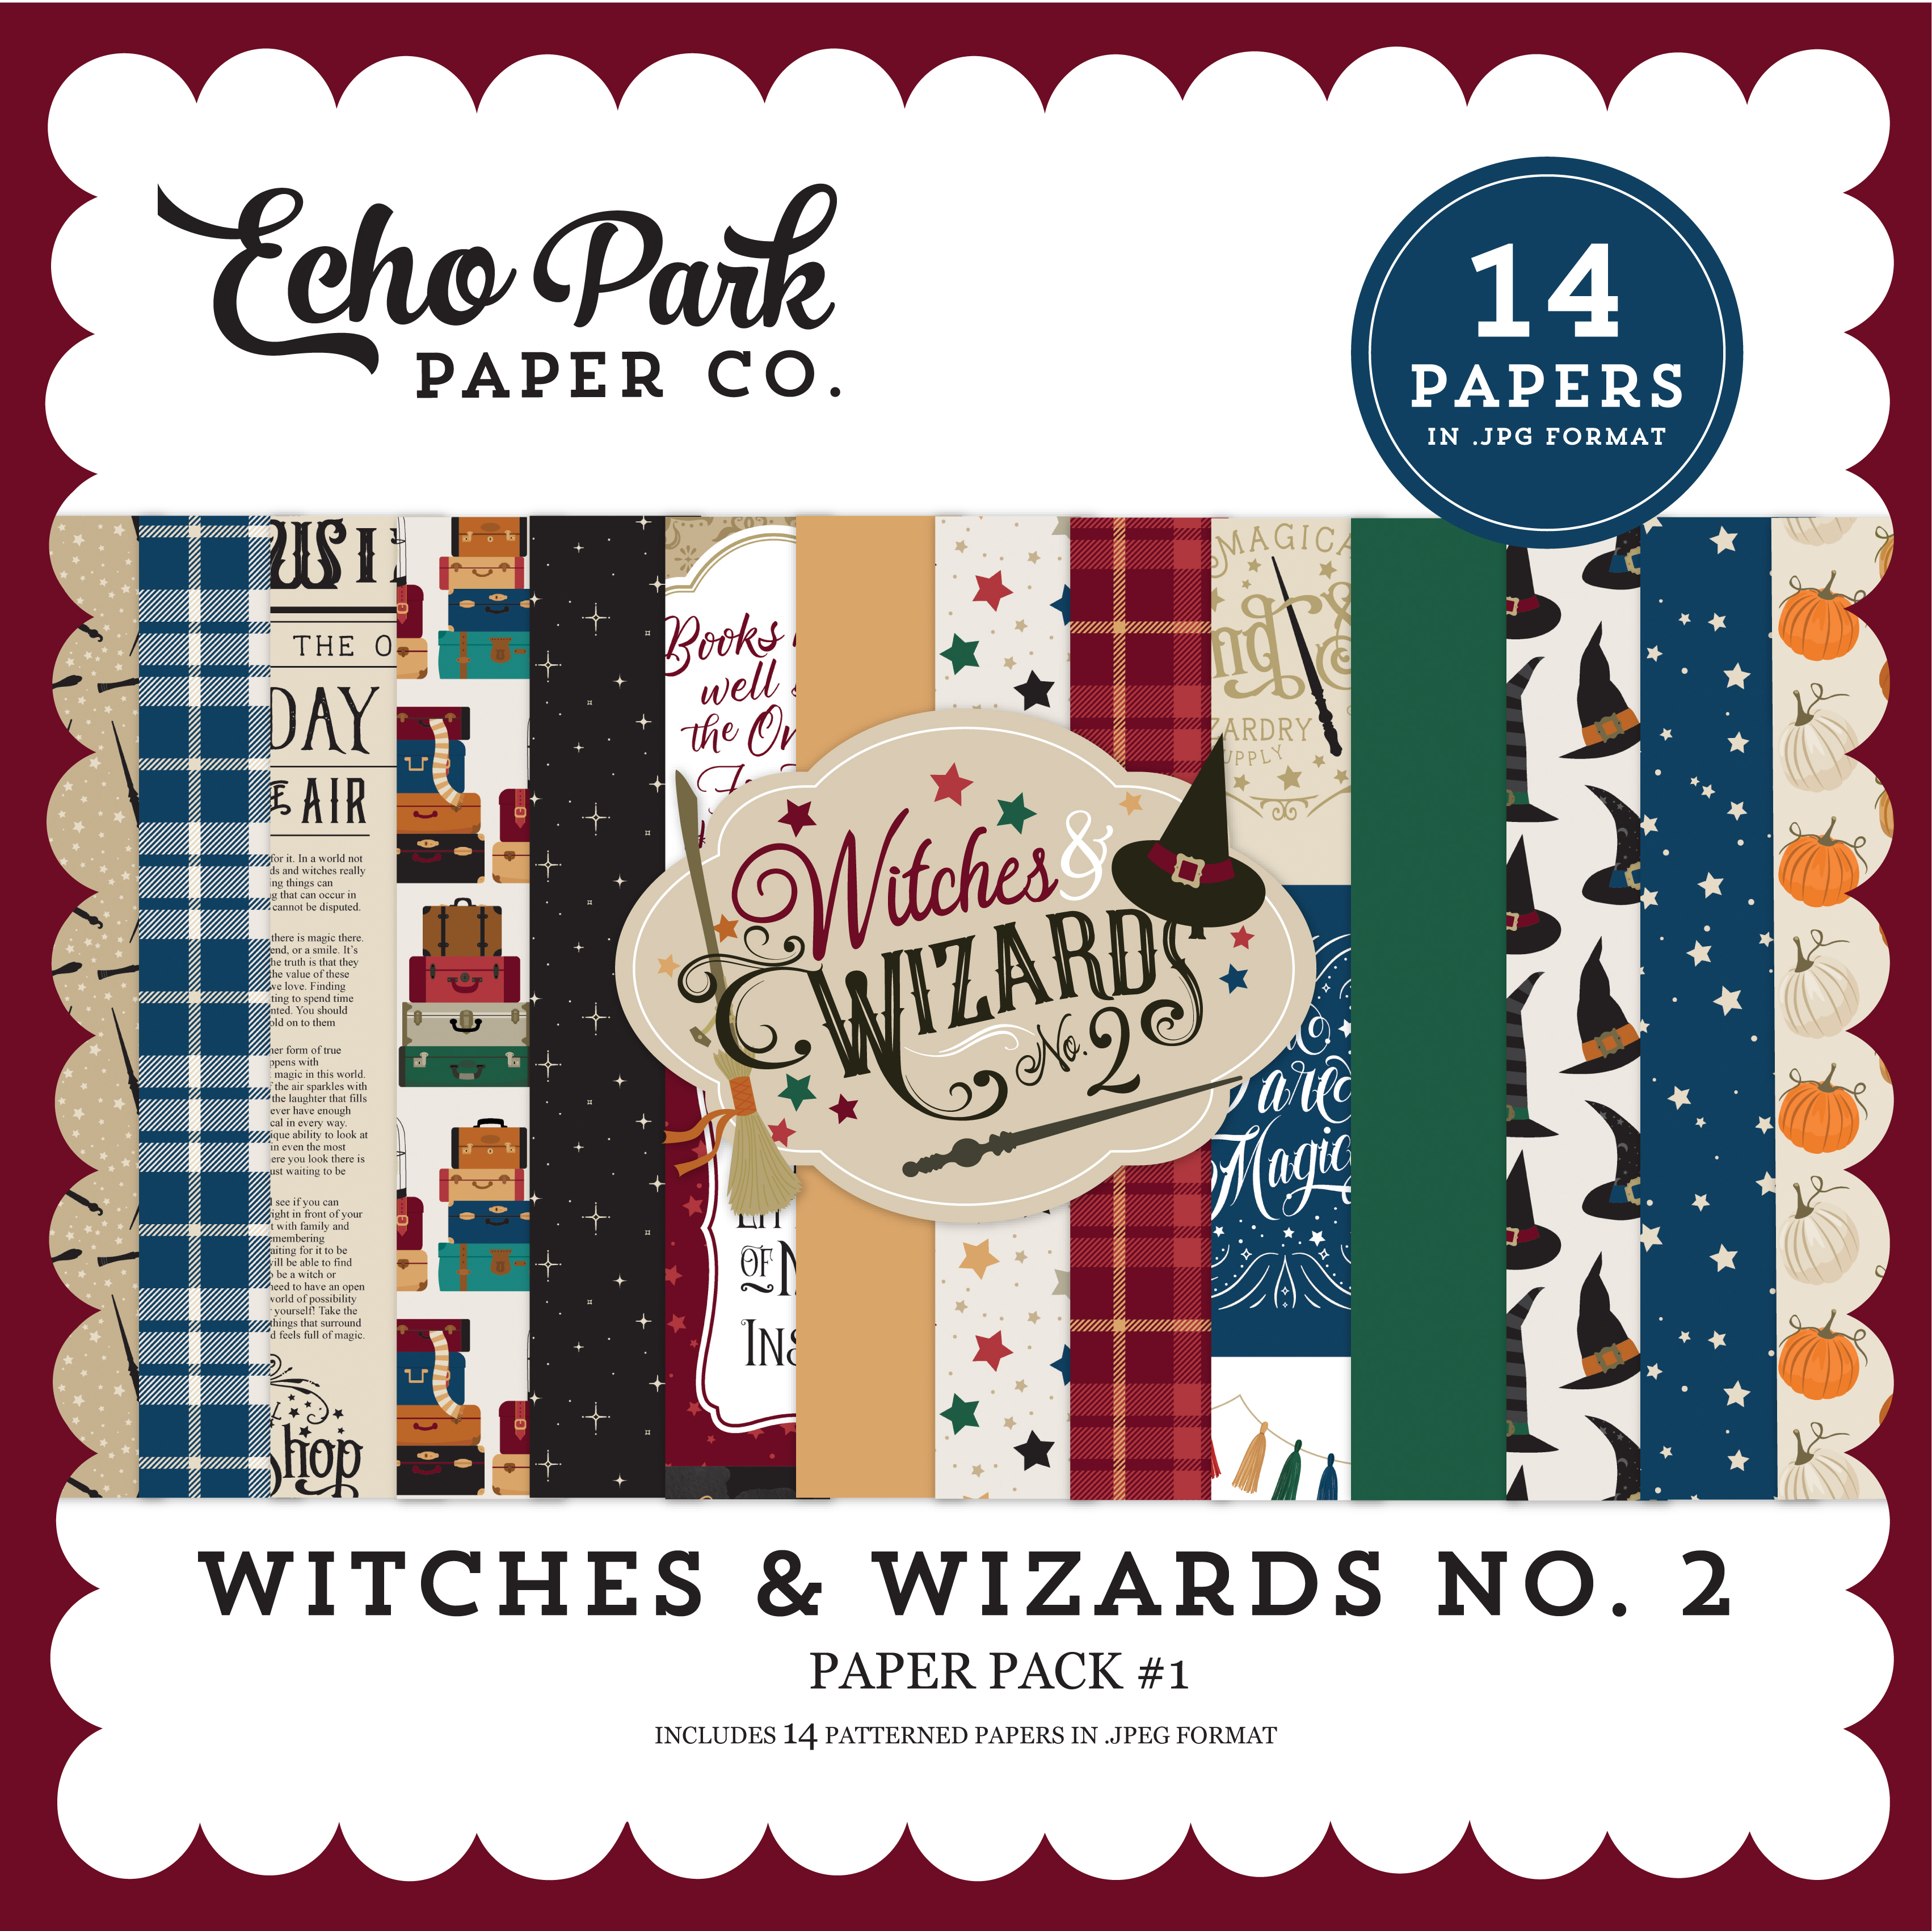 Witches & Wizards No. 2 Paper Pack #1